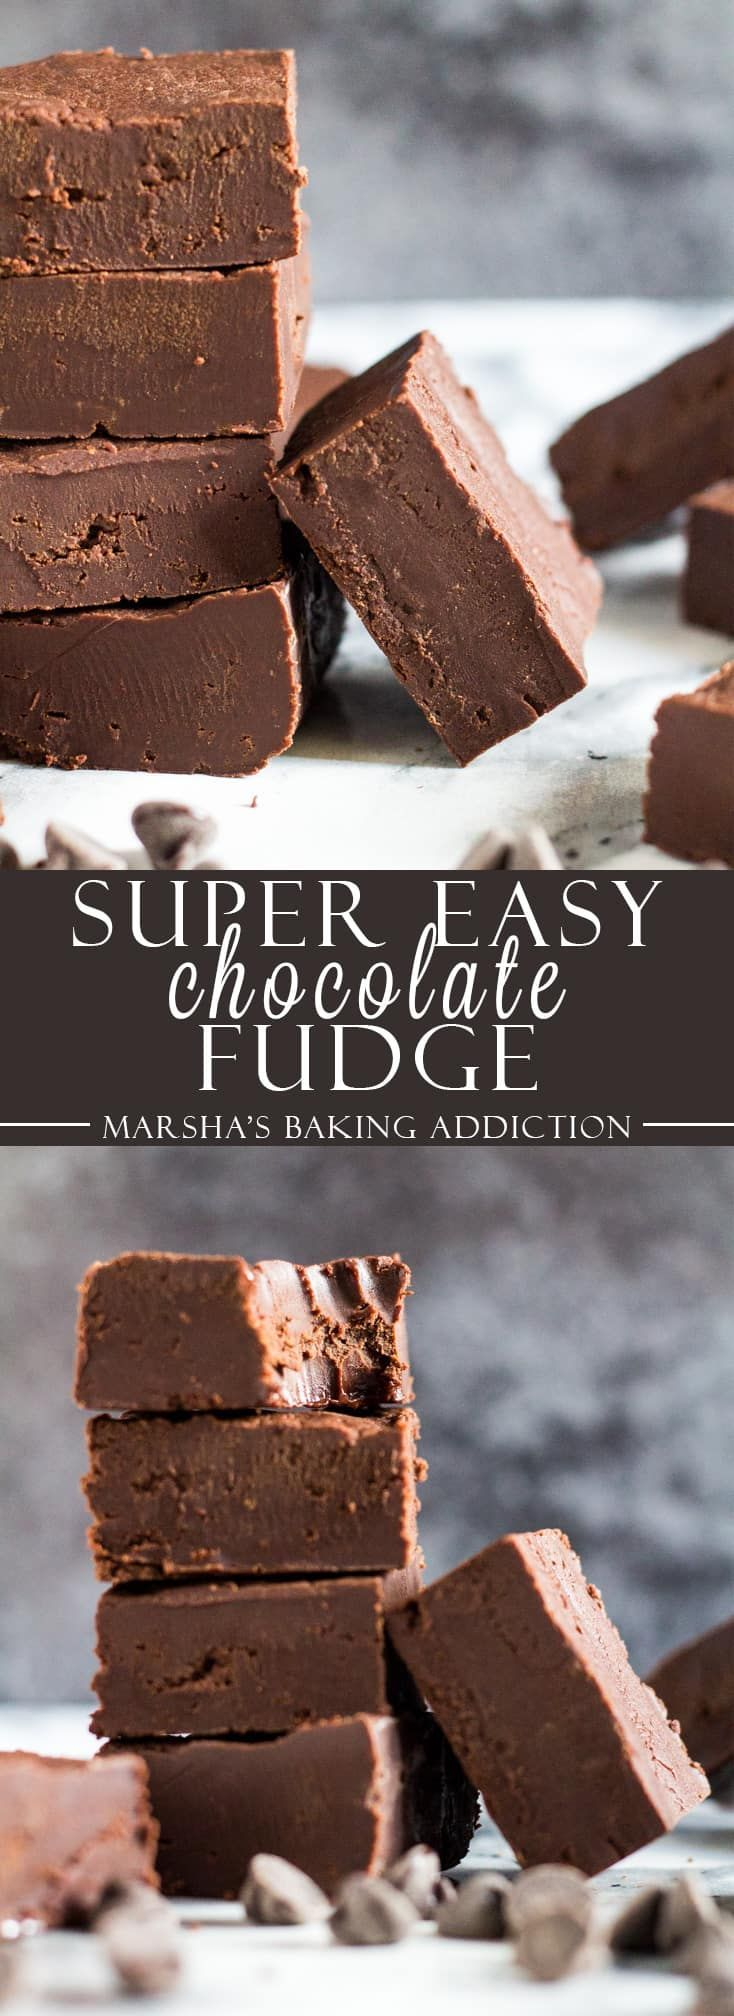 Easy Chocolate Fudge - Incredibly easy and deliciously creamy chocolate fudge that only requires 4 ingredients to make! Recipe on marshasbakingaddiction